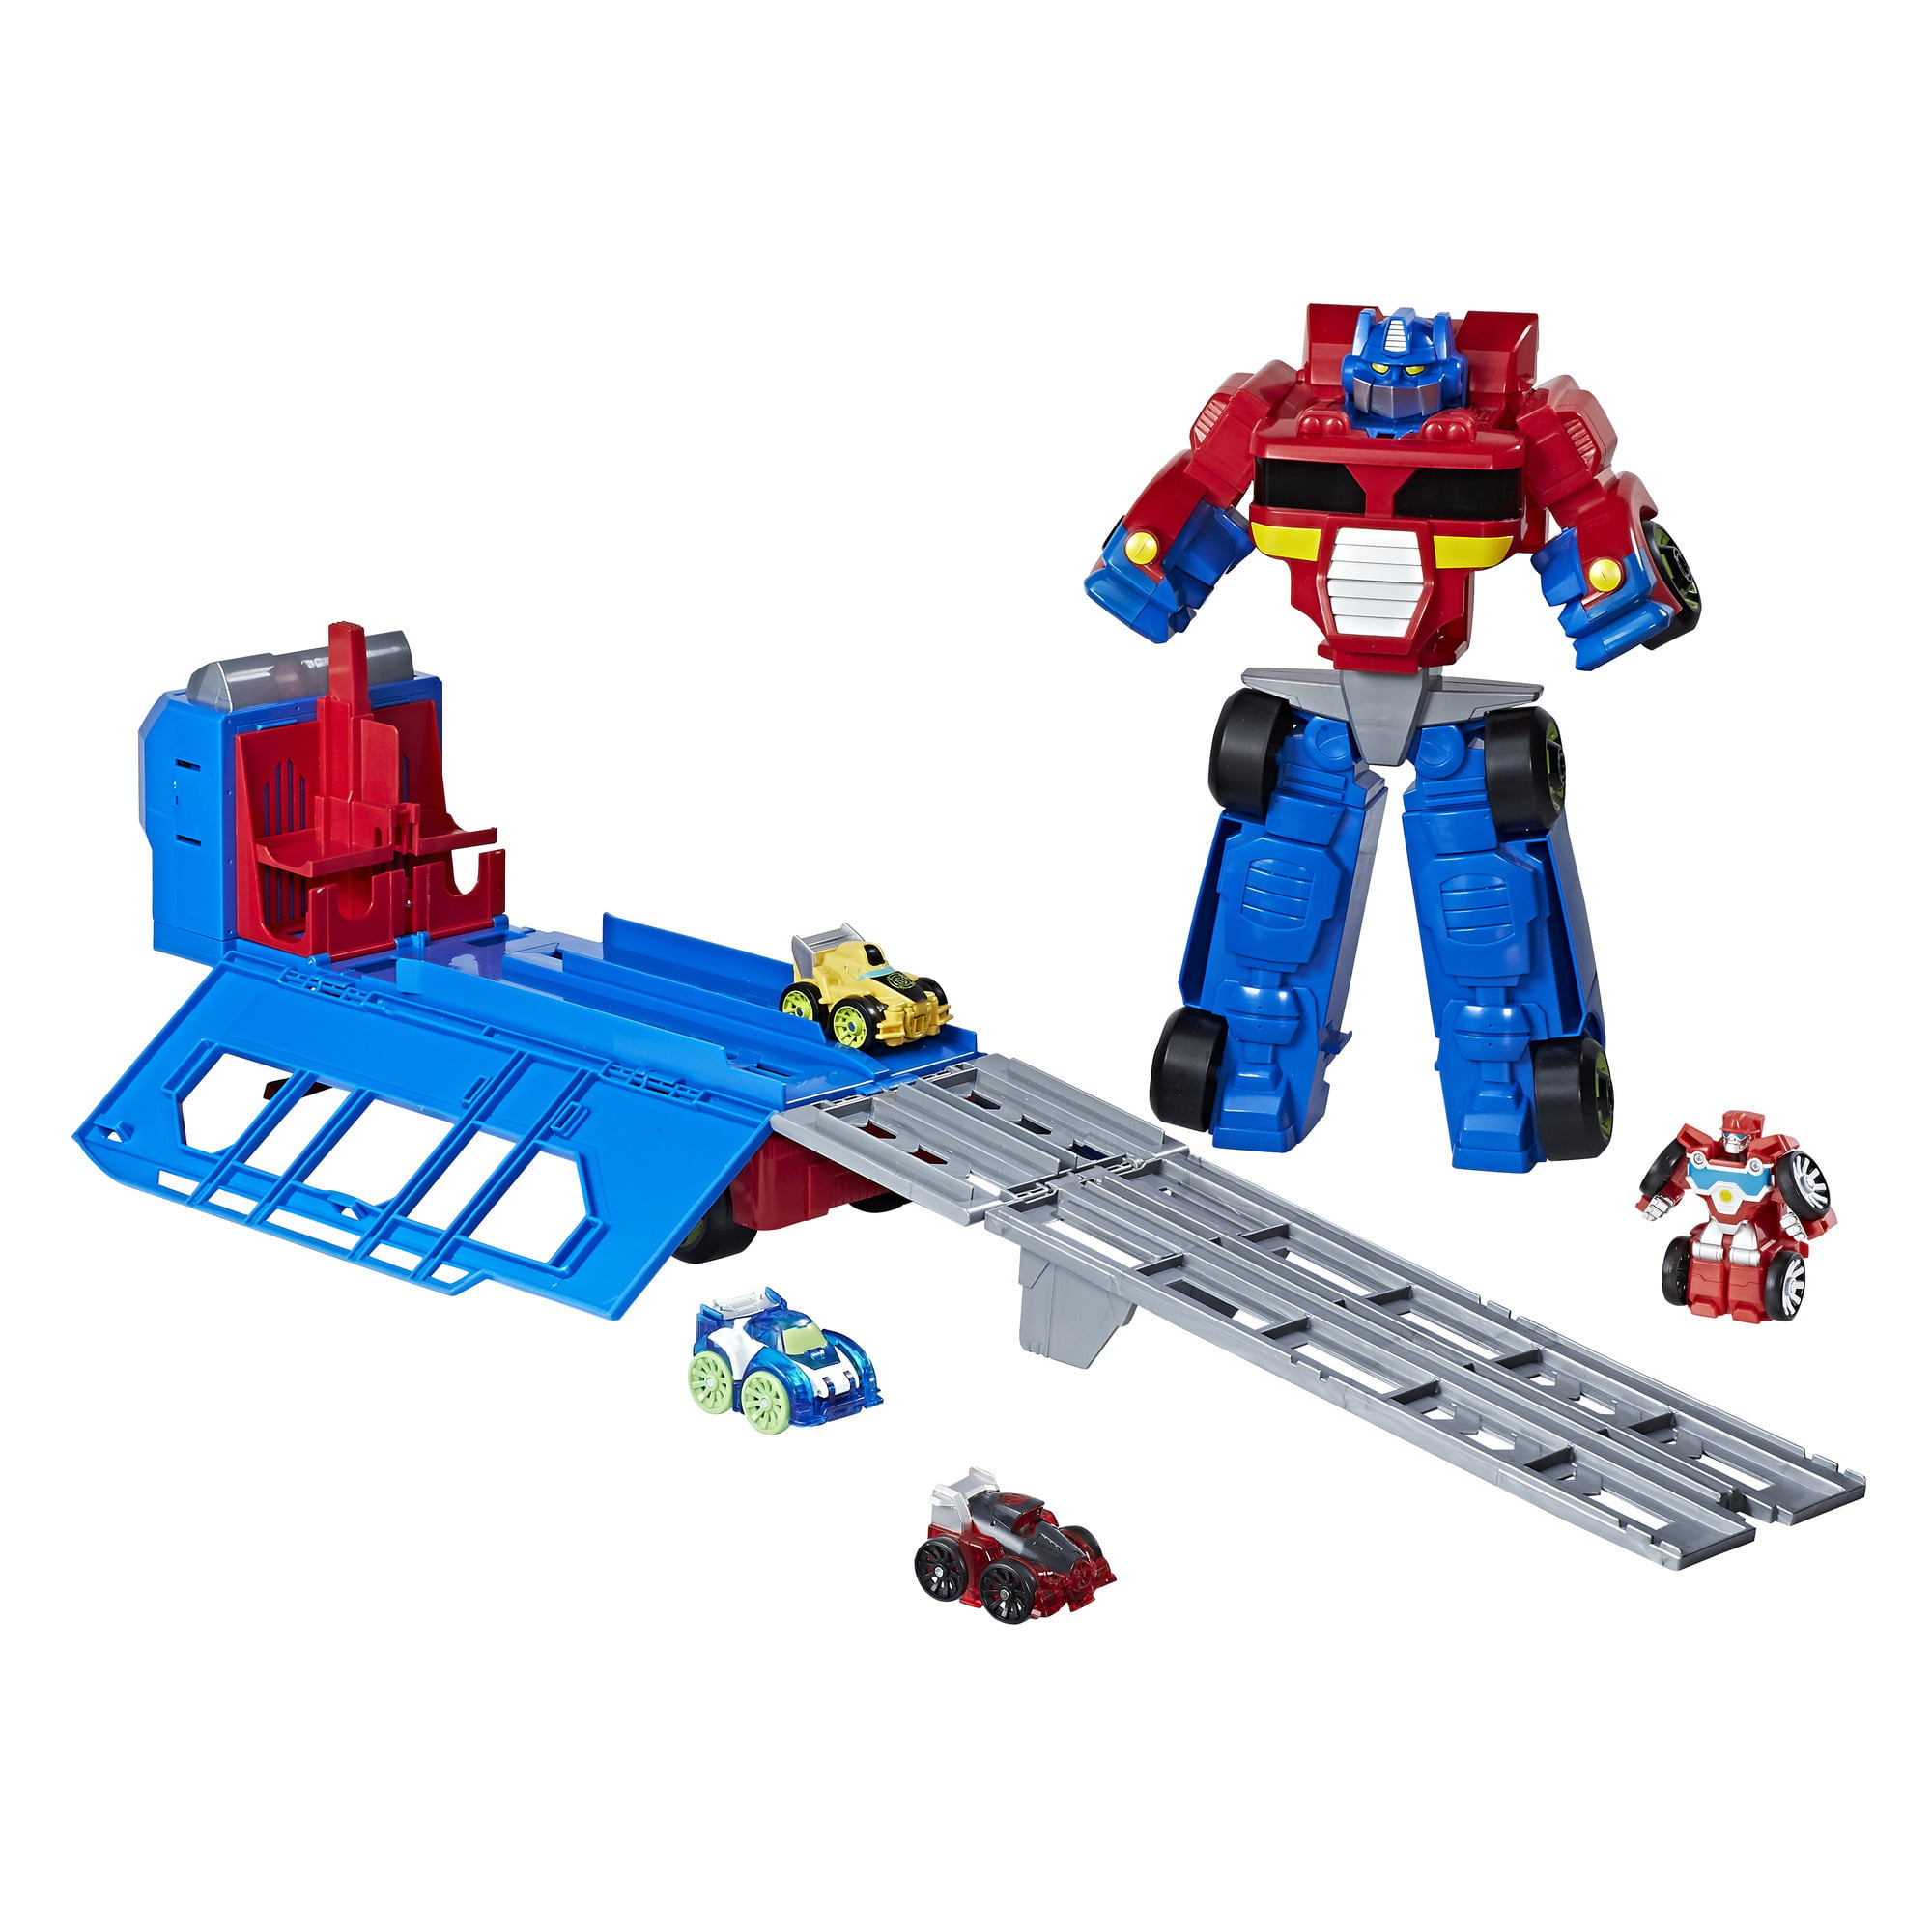 Playskool Heroes Transformers Rescue Bots Flip Racers Optimus Prime Race Track Trailer by Hasbro